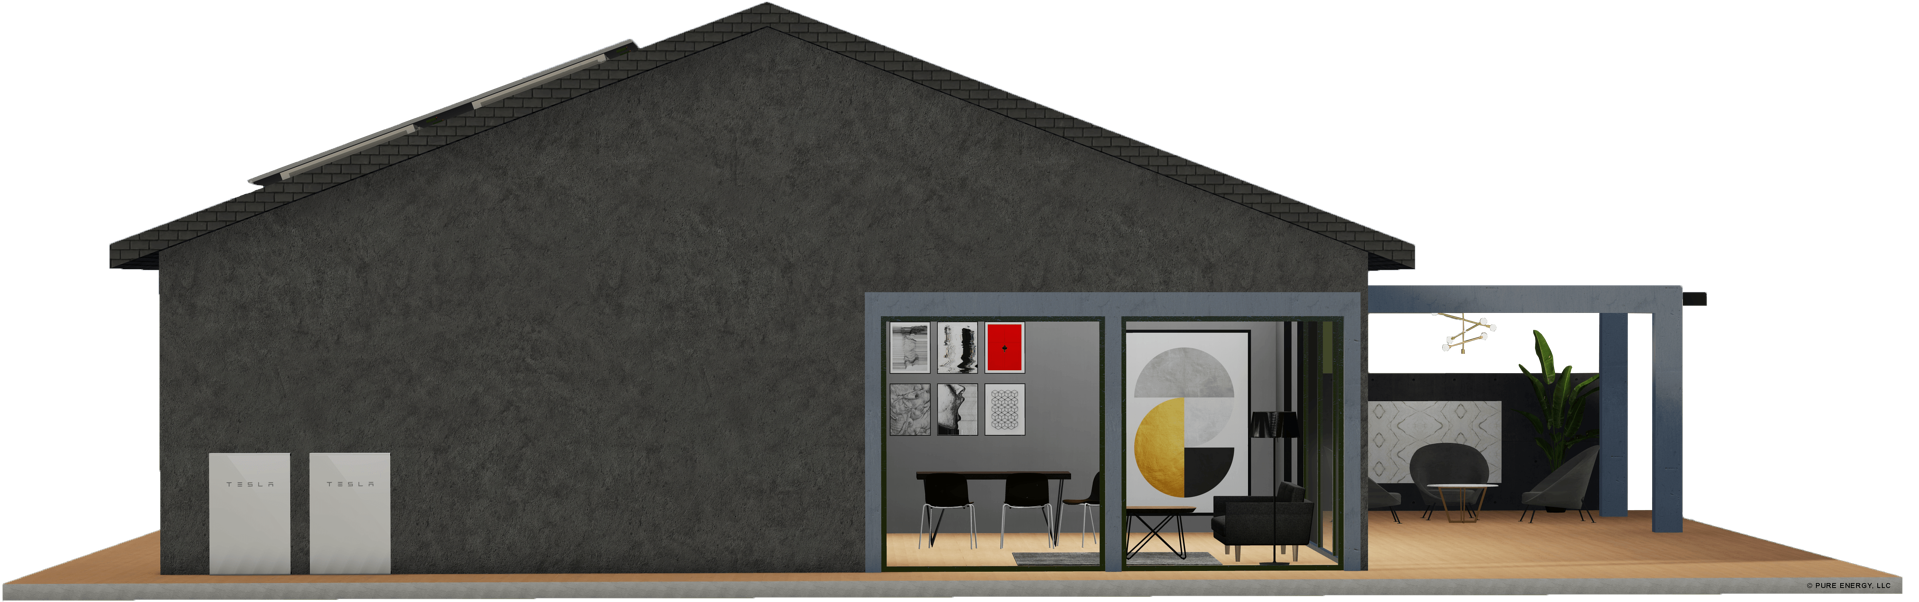 Grey house with tesla powerwalls on the side